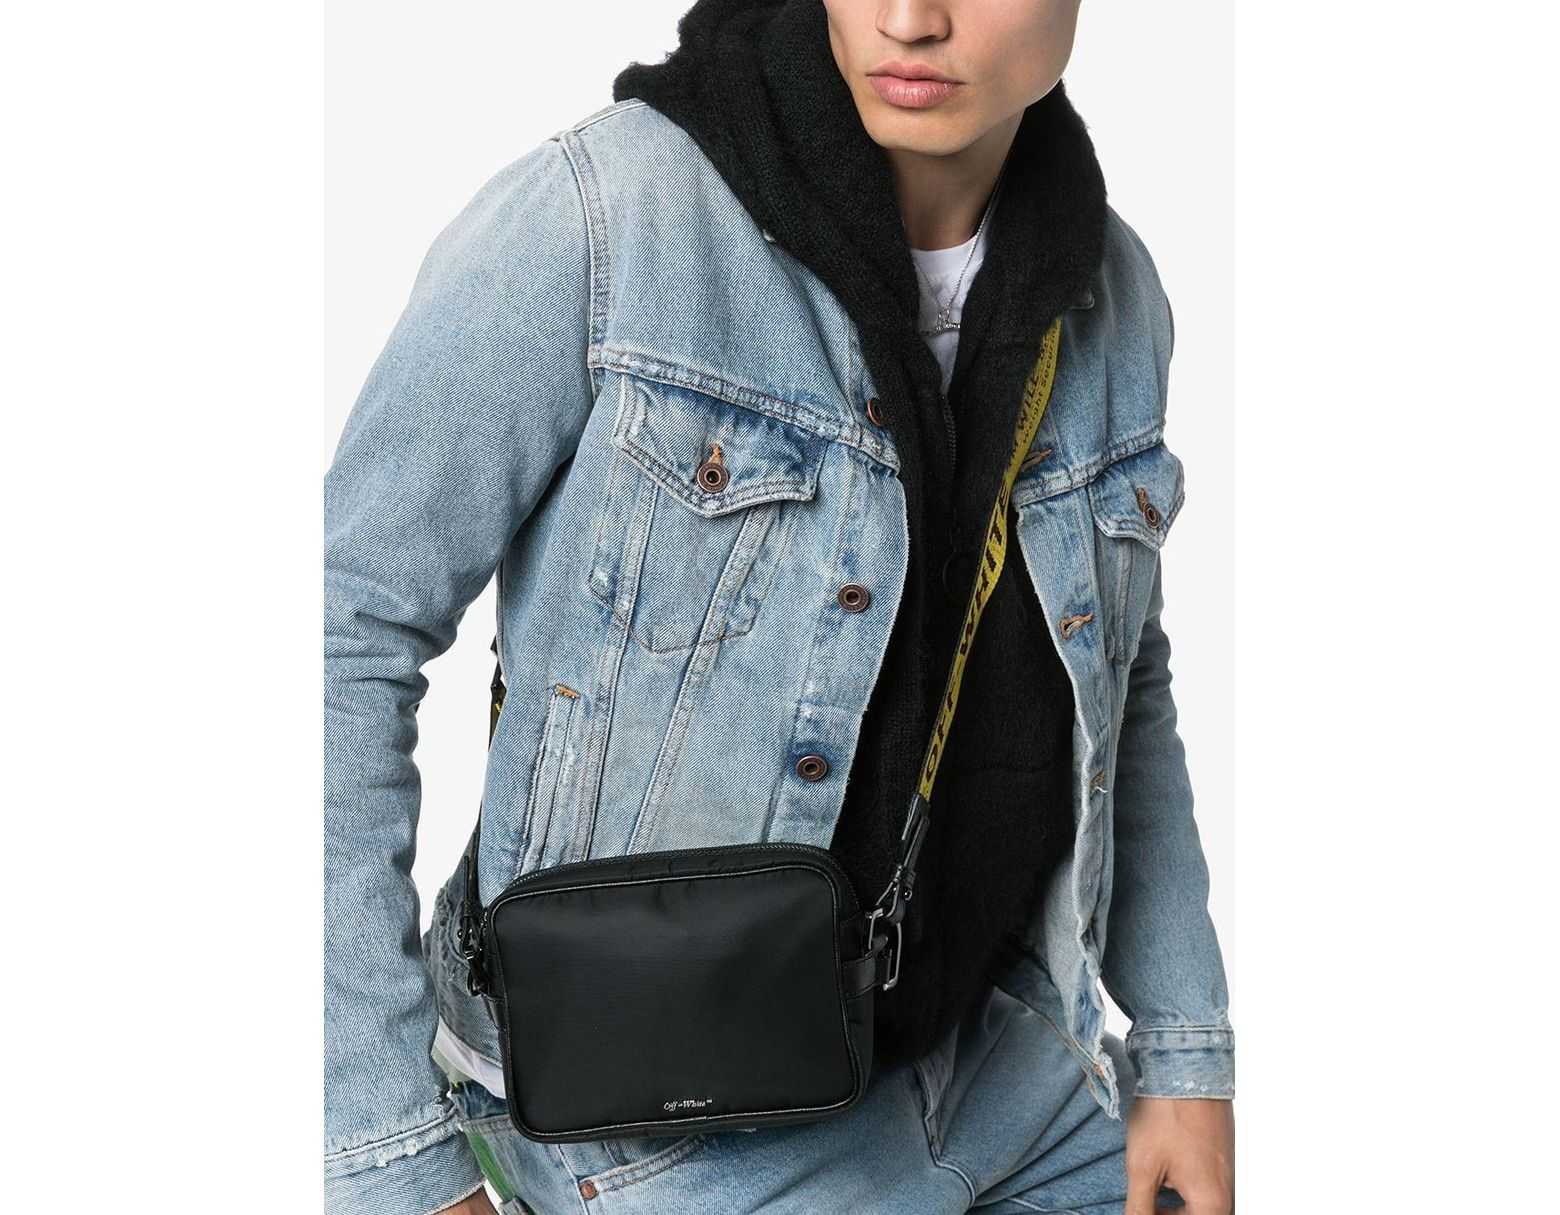 628a9e220 Off-White c/o Virgil Abloh Industrial Logo Cross Body Bag in Black for Men  - Lyst